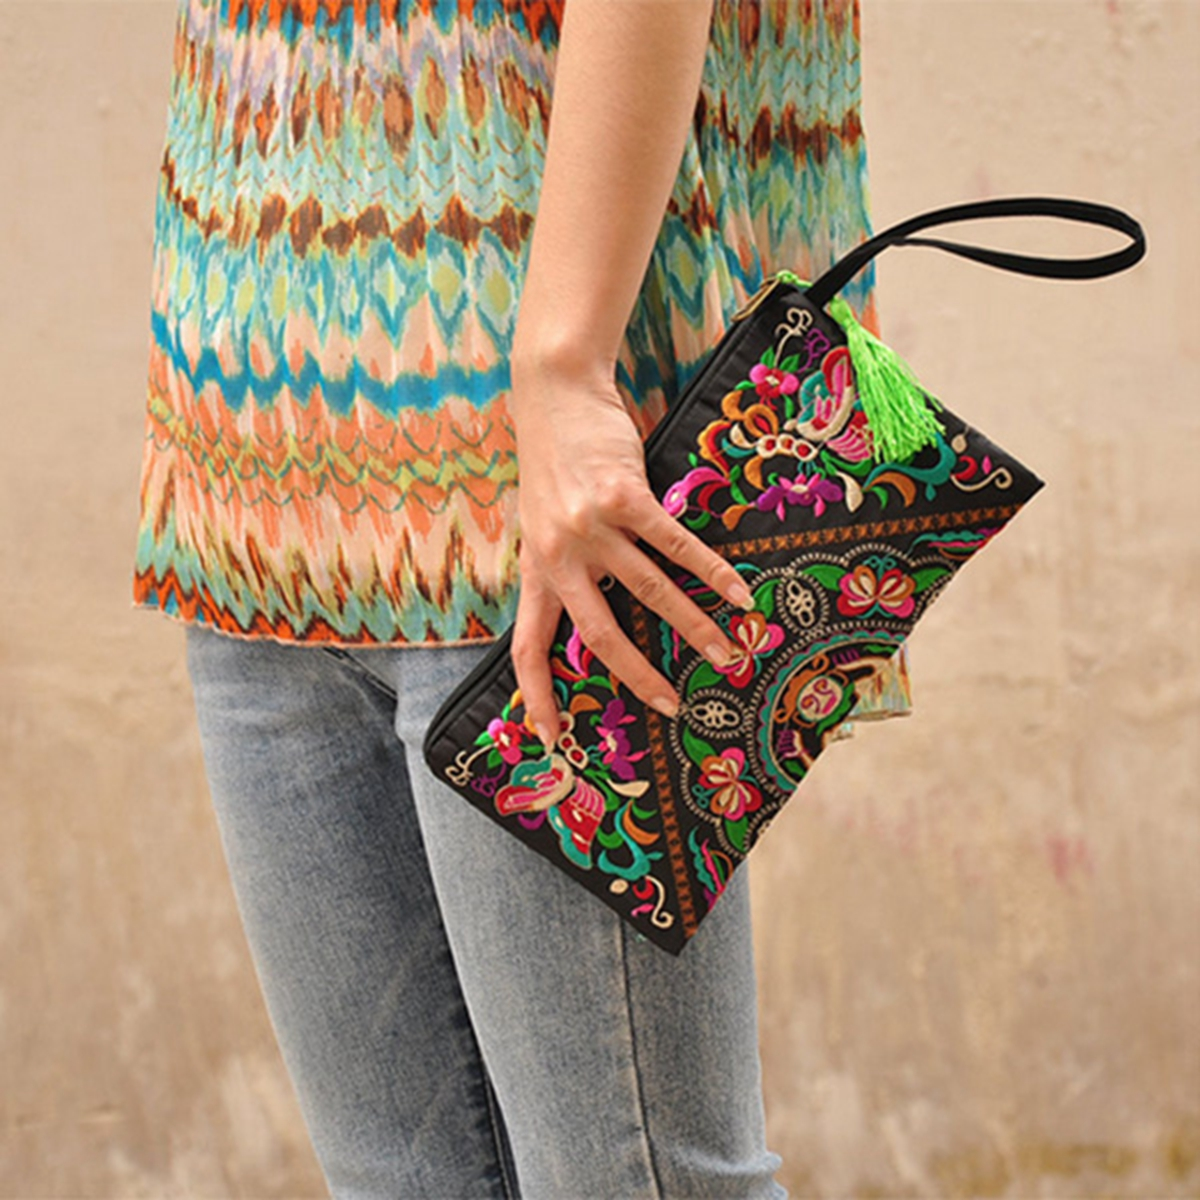 Retro Women Handbag Purse National Embroidered Phone Change Coin Zip Clutch Bag